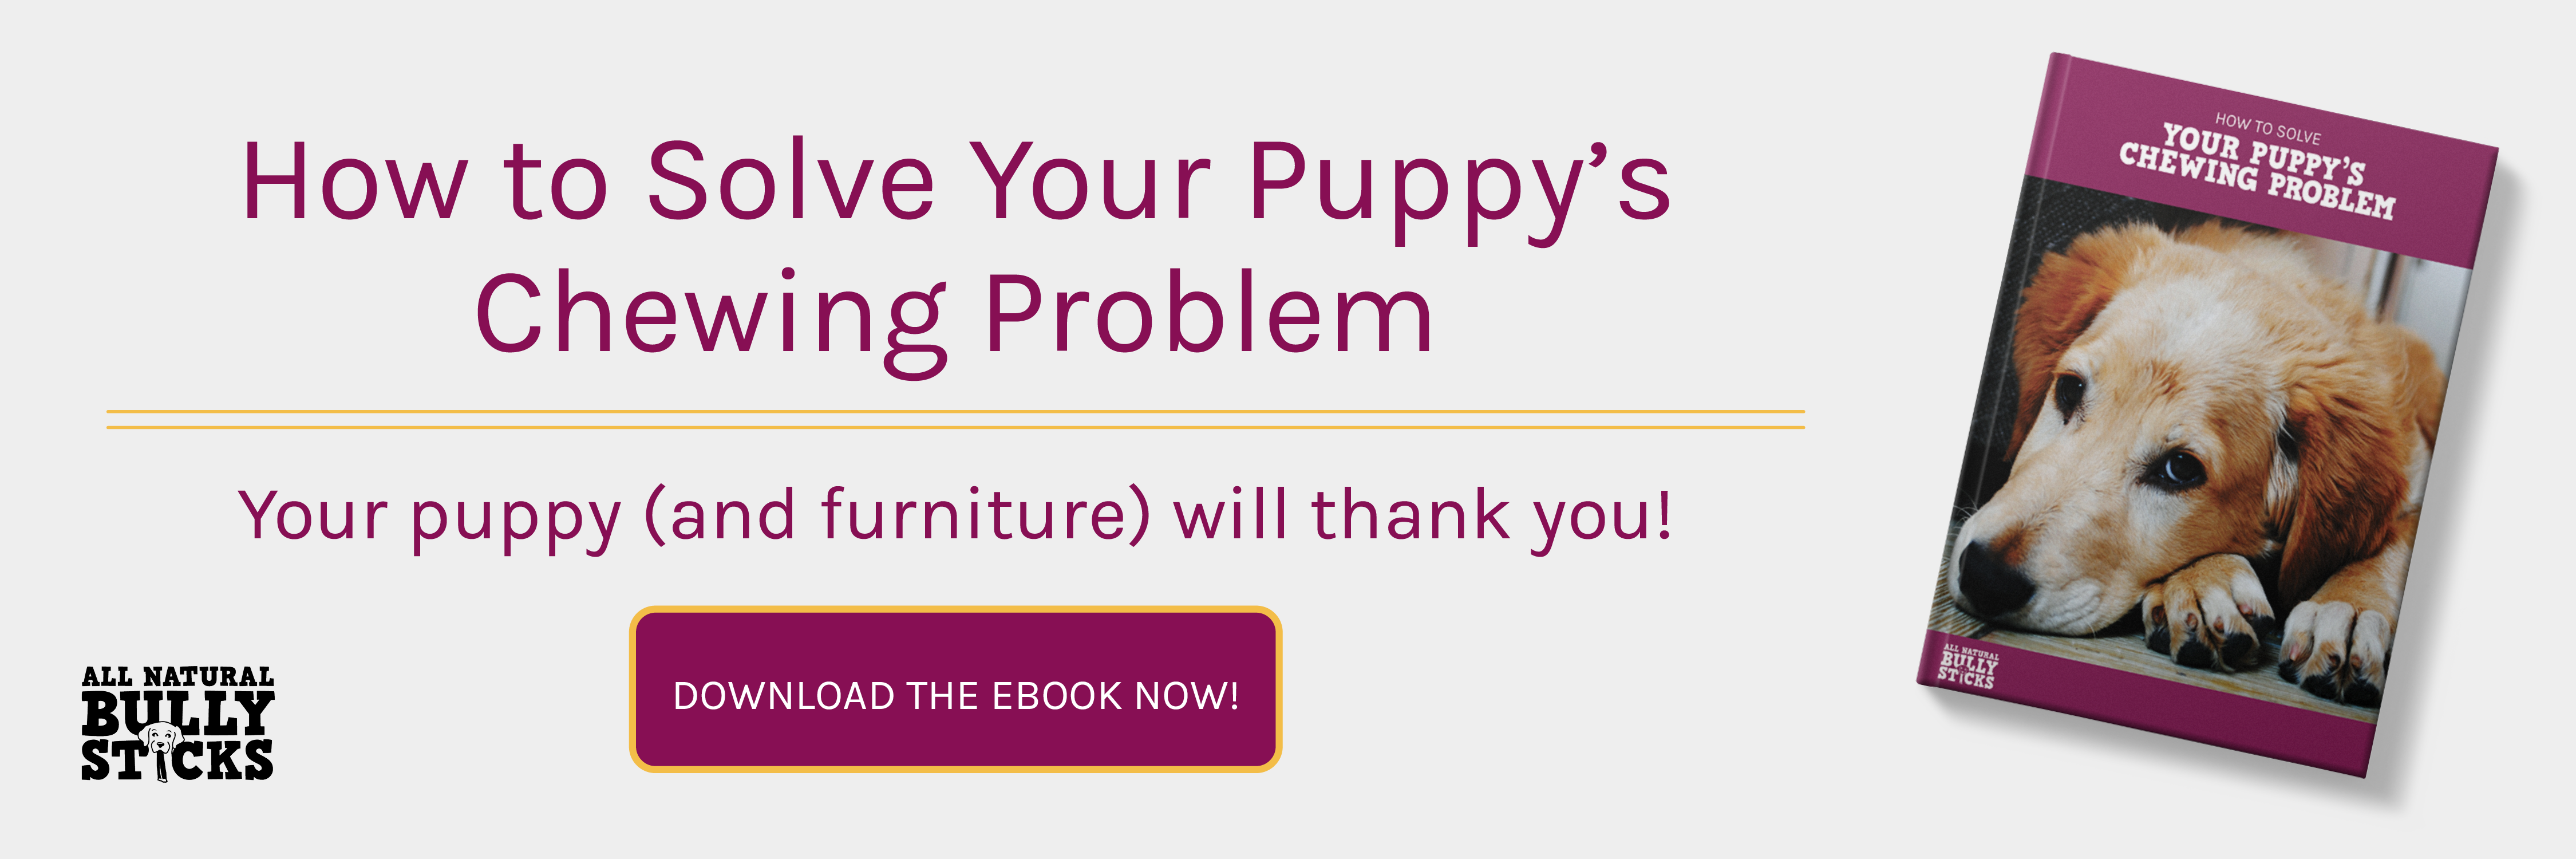 How to solve your puppy's chewing problem?